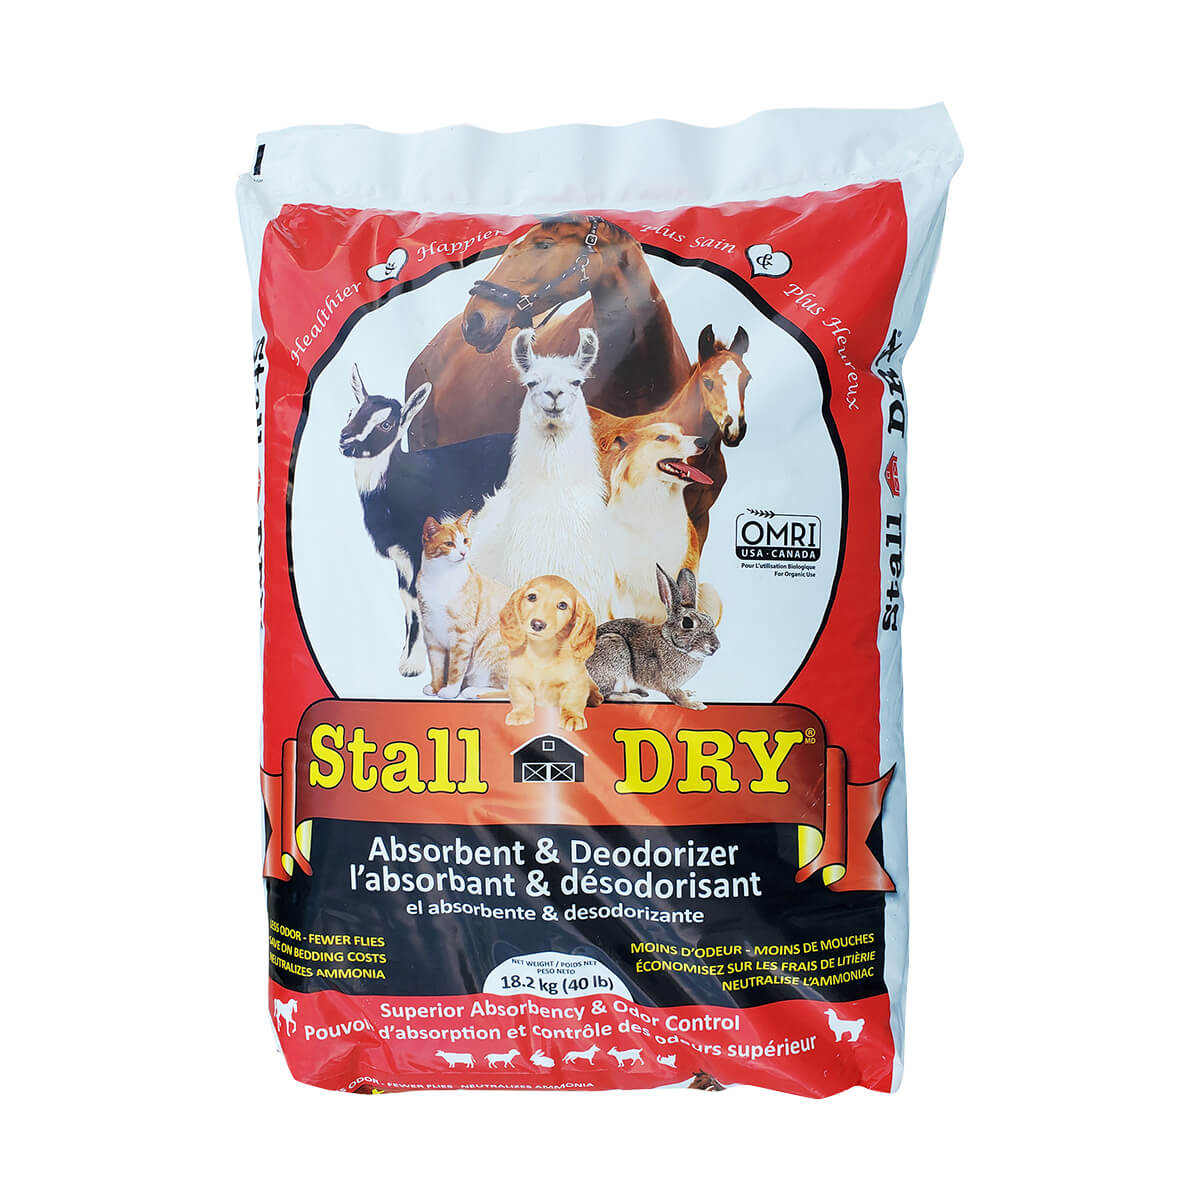 18 kg Stall Dry Absorbent & Deodorizer